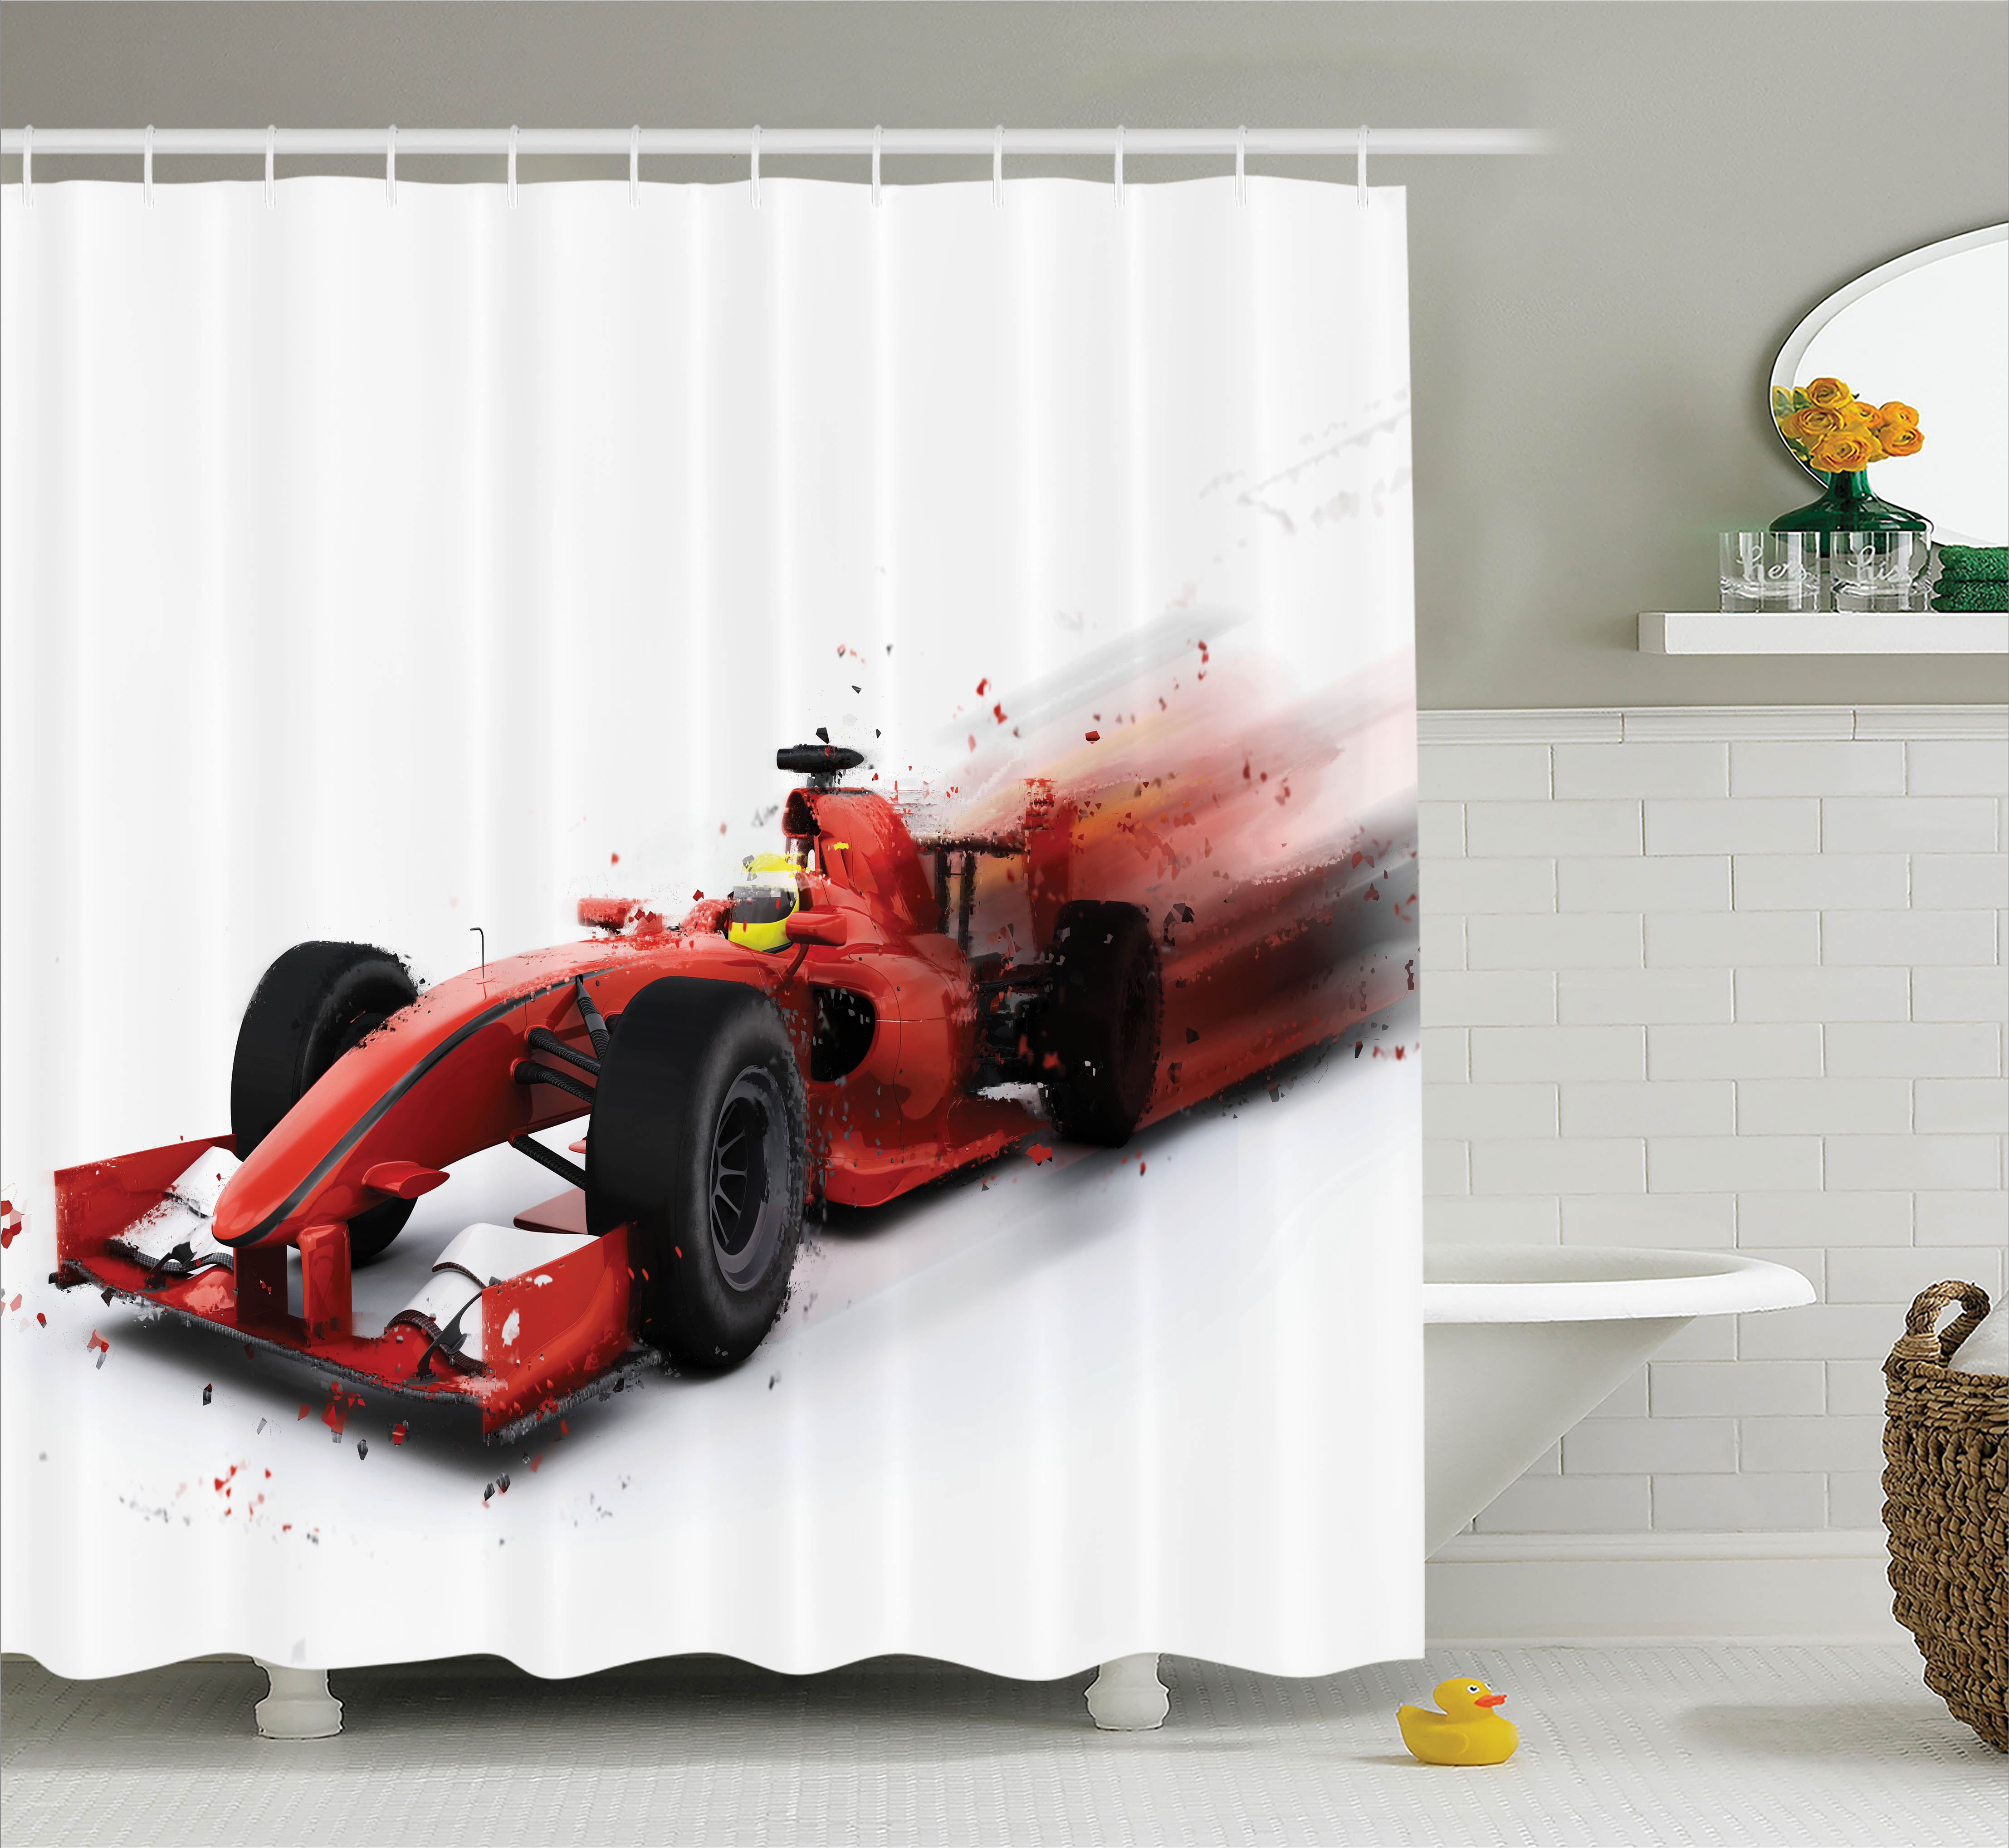 Red And Black Shower Curtain Set Cars Decor Shower Curtain Set Generic Formula 1 Racing Car Illustration With Special Pace Effect Turbo Motion Auto Print Bathroom Decor Red Black